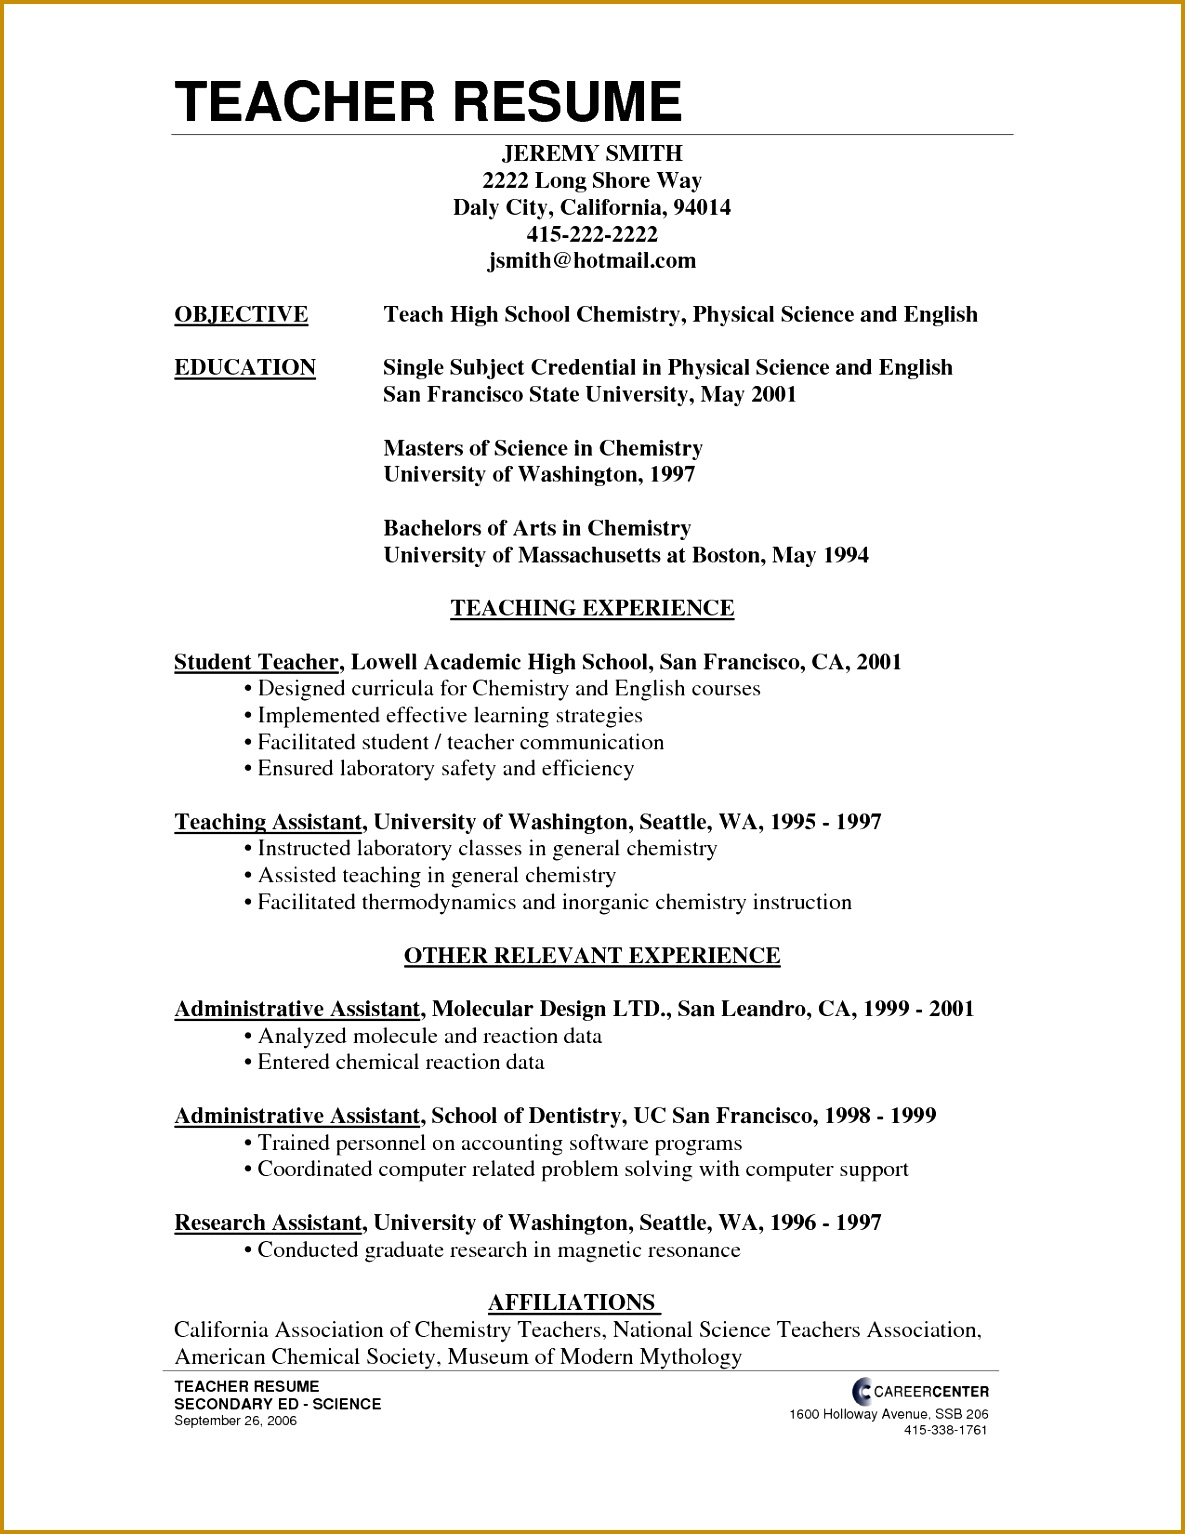 Luxury Security Guard Resume Beautiful Free Cover Letter Templates Examples Resume and Cover Letter Examples 15341185